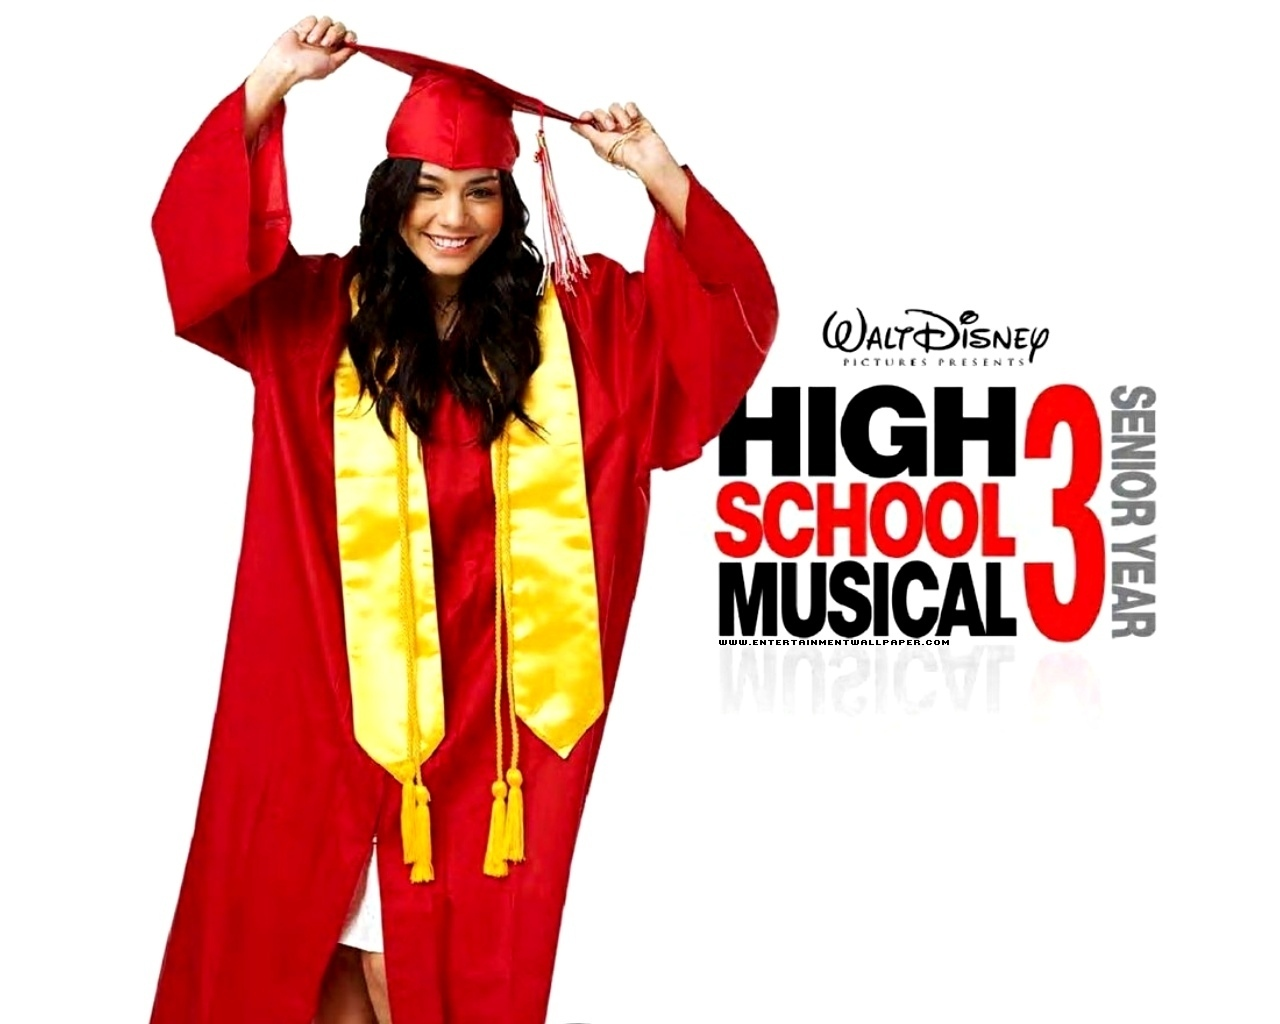 download High School Musical 3 wallpaper 39jpg [1280x1024 1280x1024